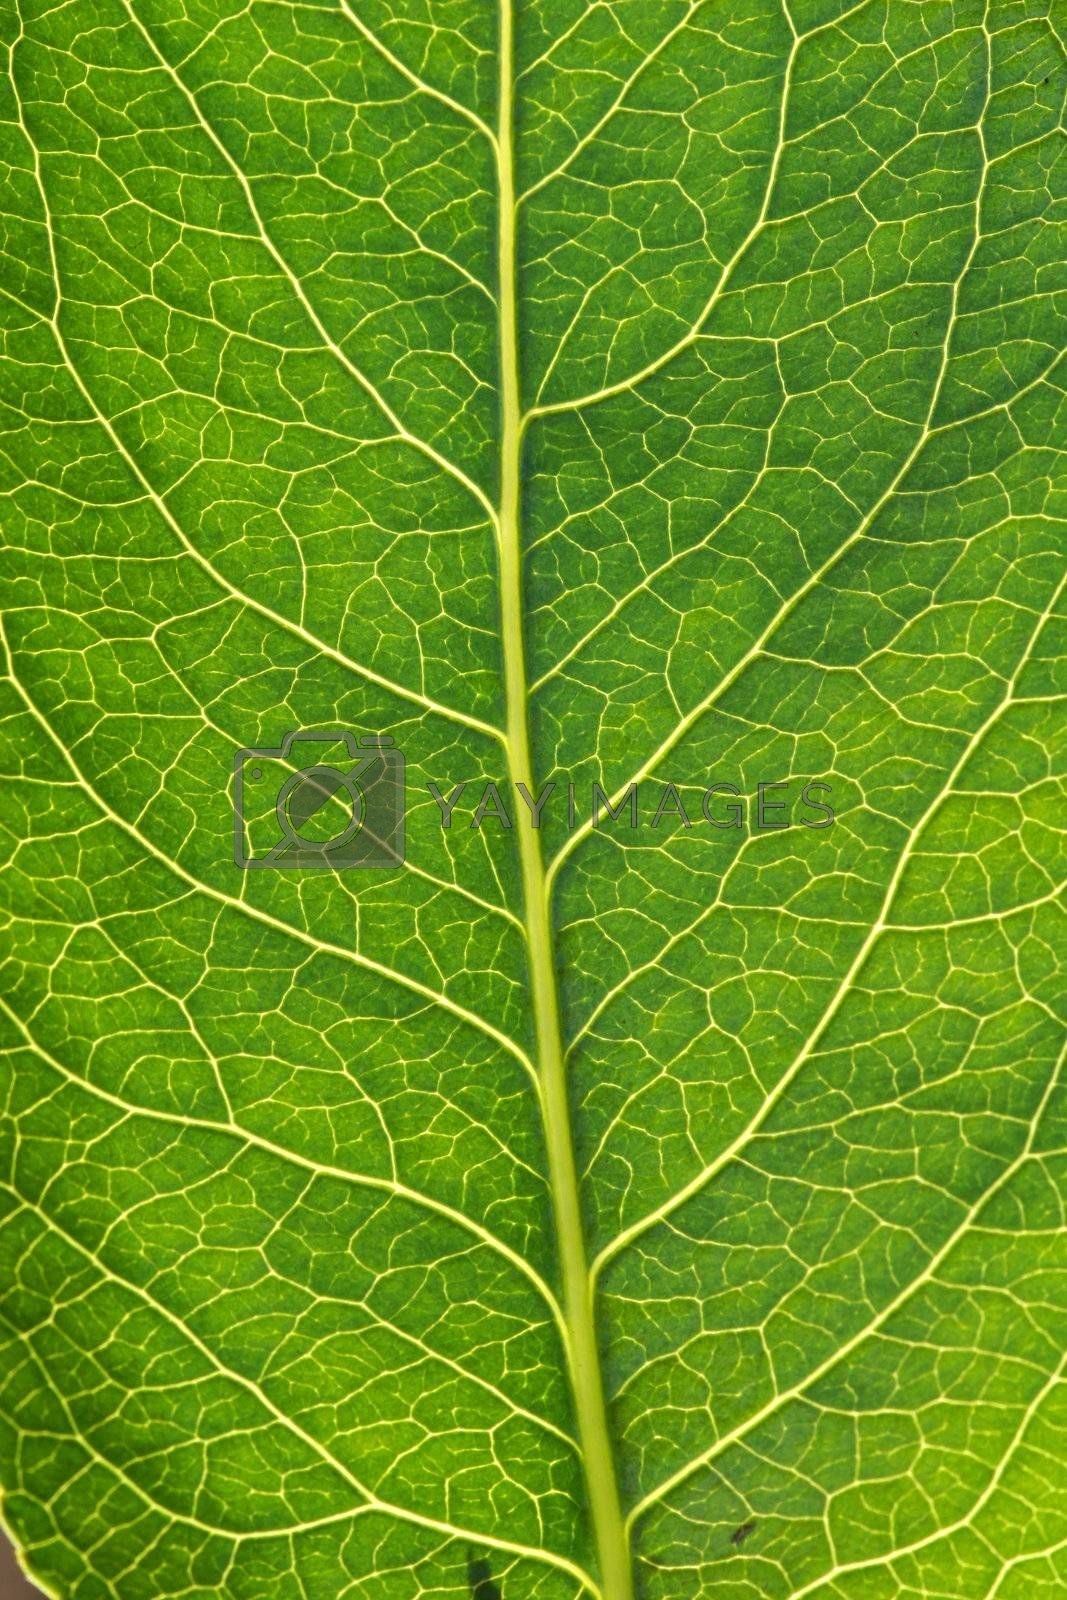 A macro of the veins in a tree leaf